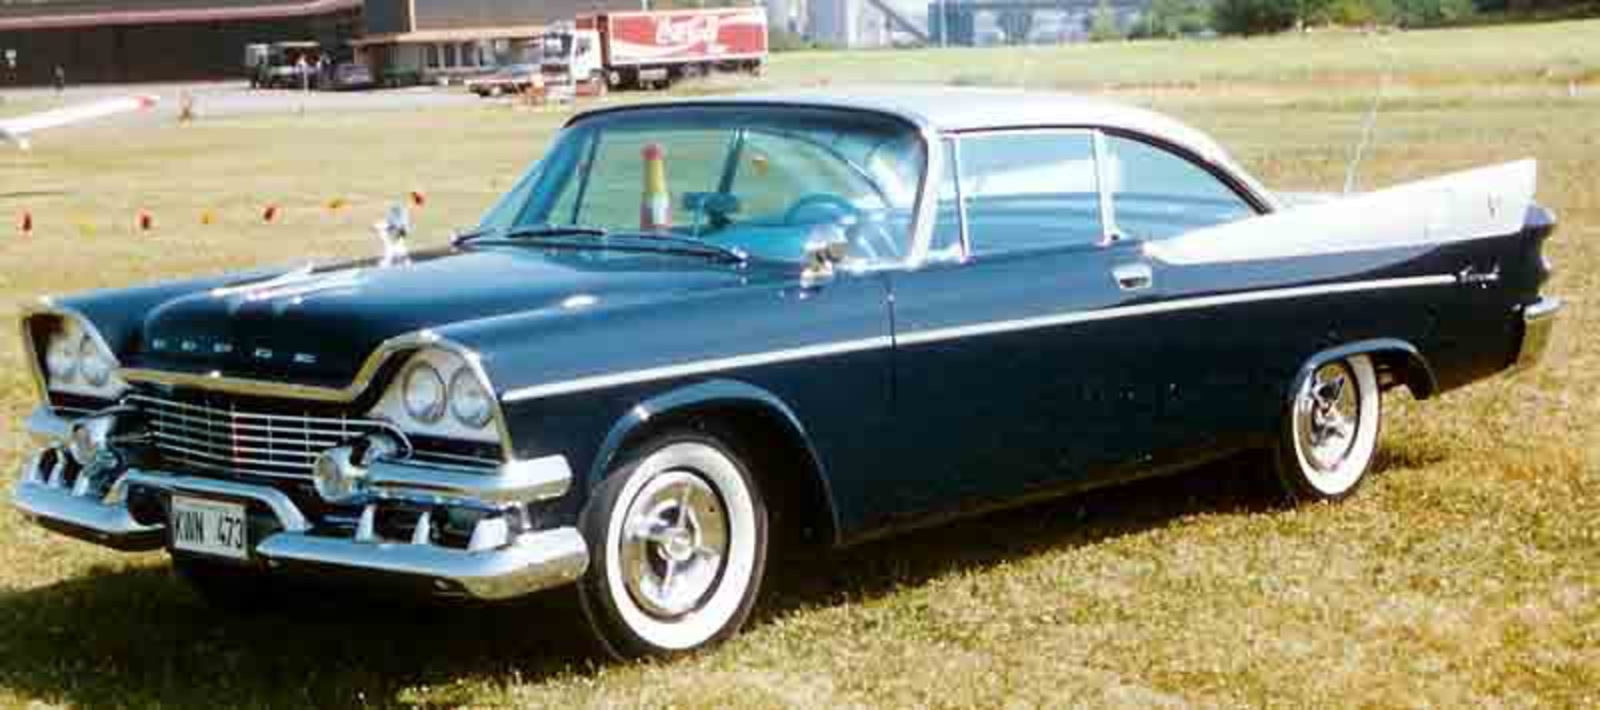 File:Dodge Coronet 1958.jpg. No higher resolution available.